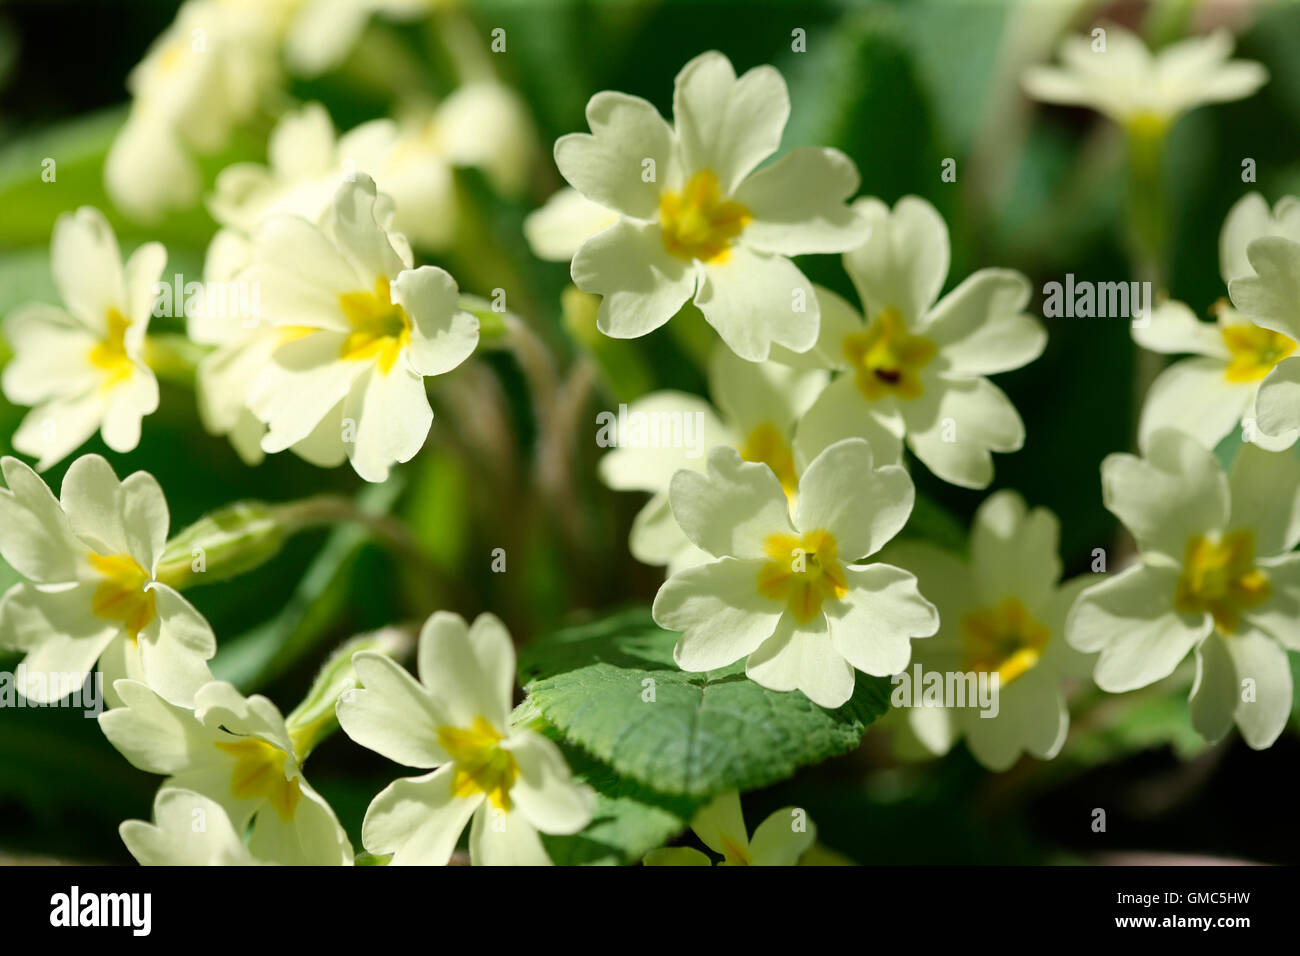 much loved early spring flower, the english primrose in full bloom Jane Ann Butler Photography JABP1604 - Stock Image